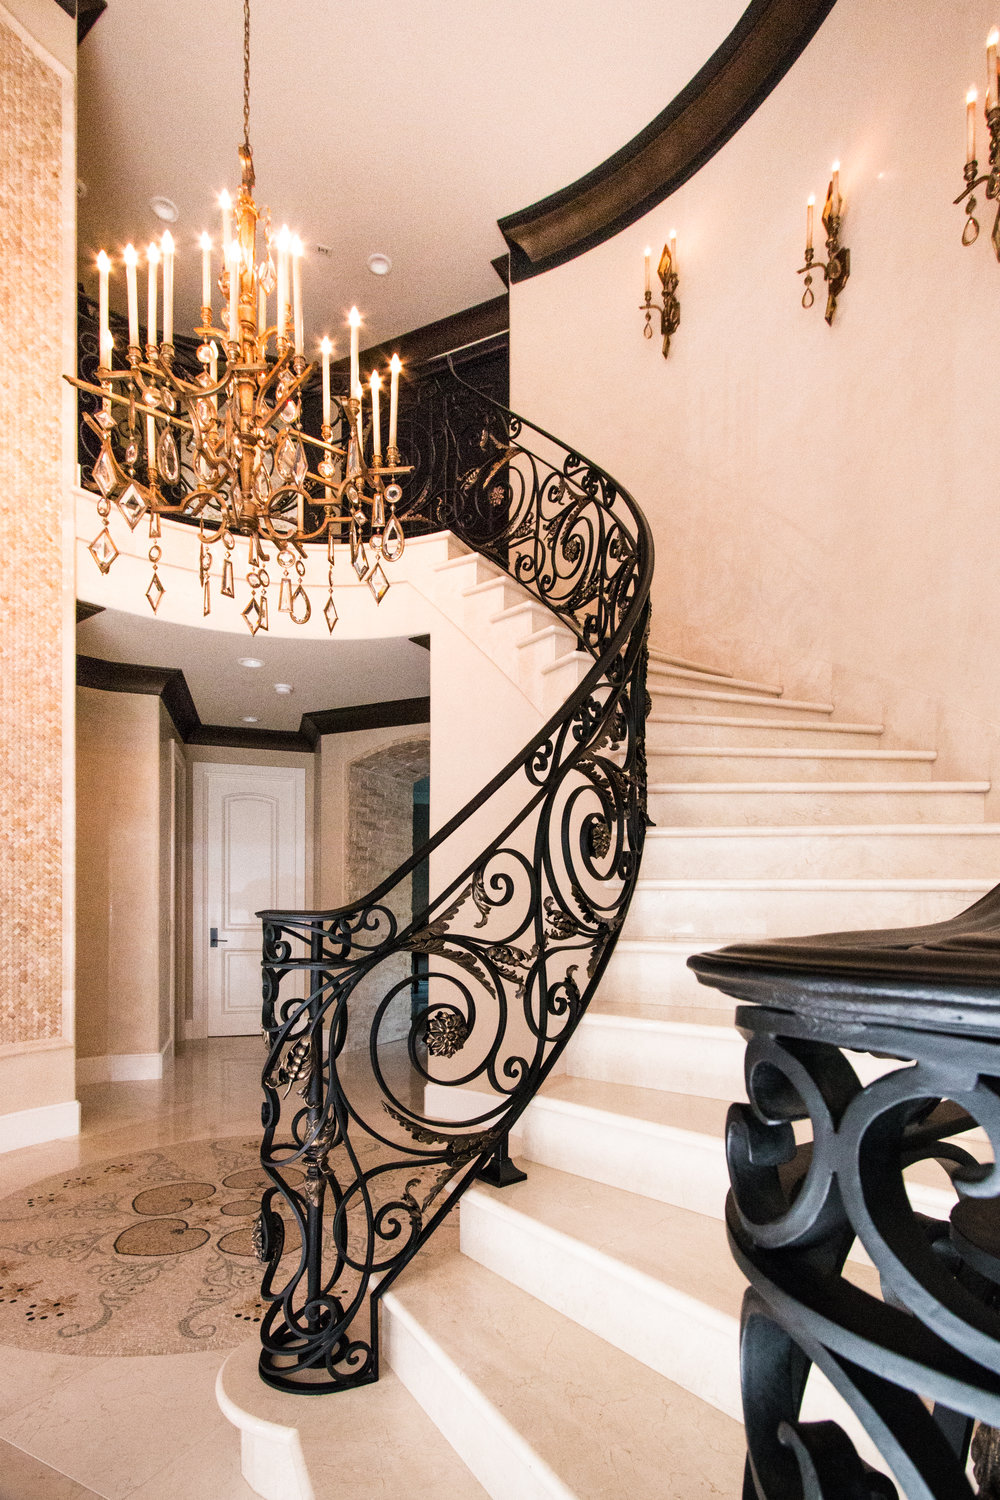 Custom, Hand Forged Ornate Designed Stair Railing in Shady Canyon, California